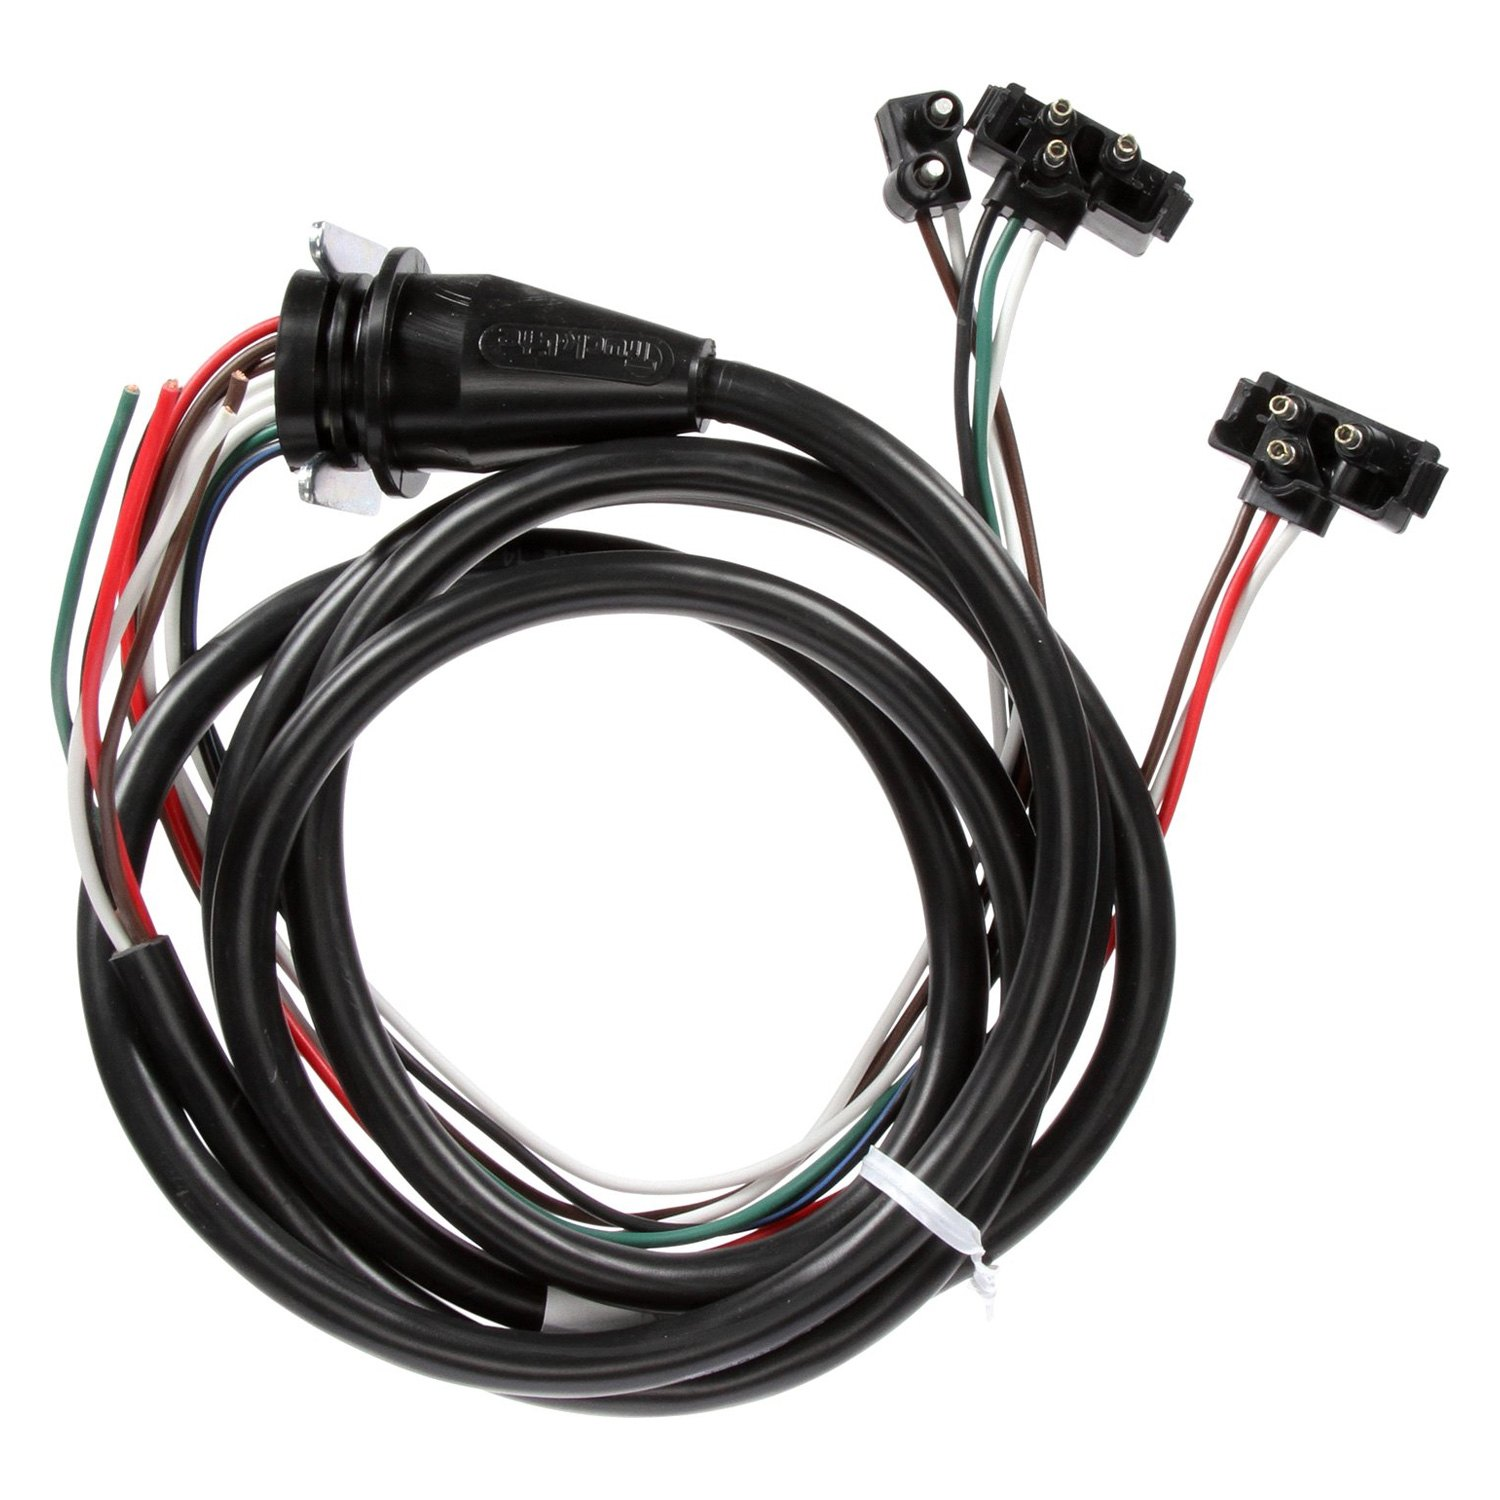 hight resolution of  and stop turn tail wiring harness with stop turn tail and marker clearance breakouttruck lite 50 series 96 driver side 3 plug marker clearance and